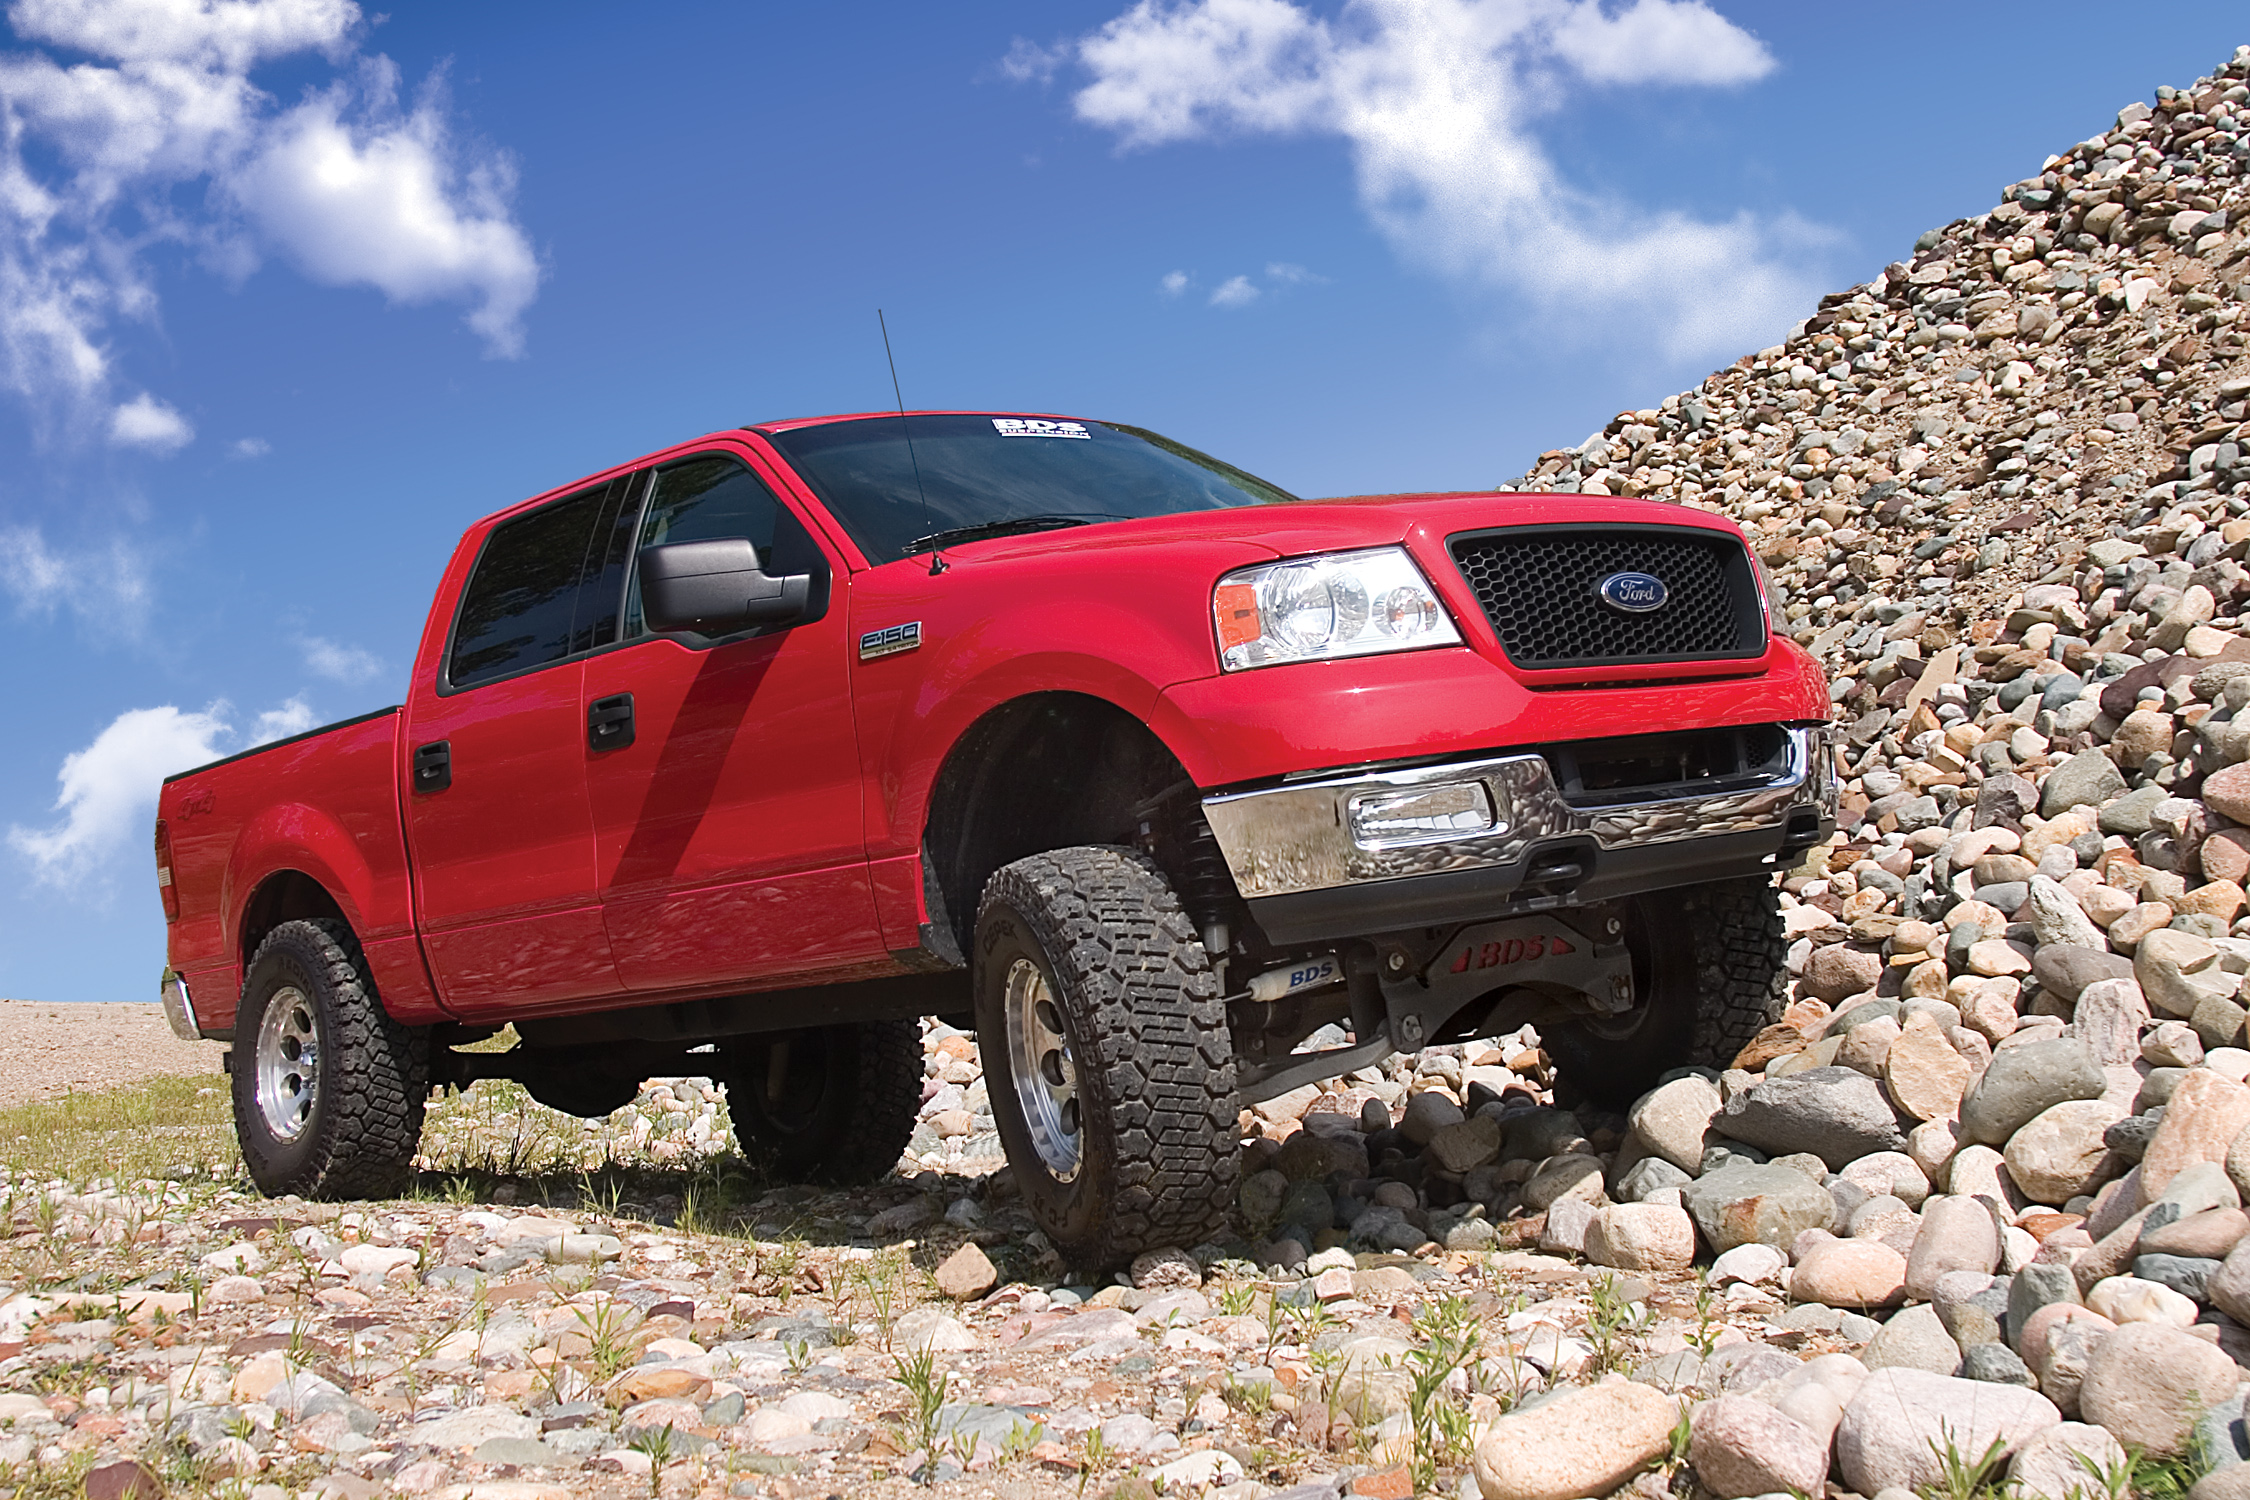 Bds 6 8 Lifts For 2004 2008 Ford F150 4wd Trucks F 150 Lariat 4x4 Hires Image 08r 6in